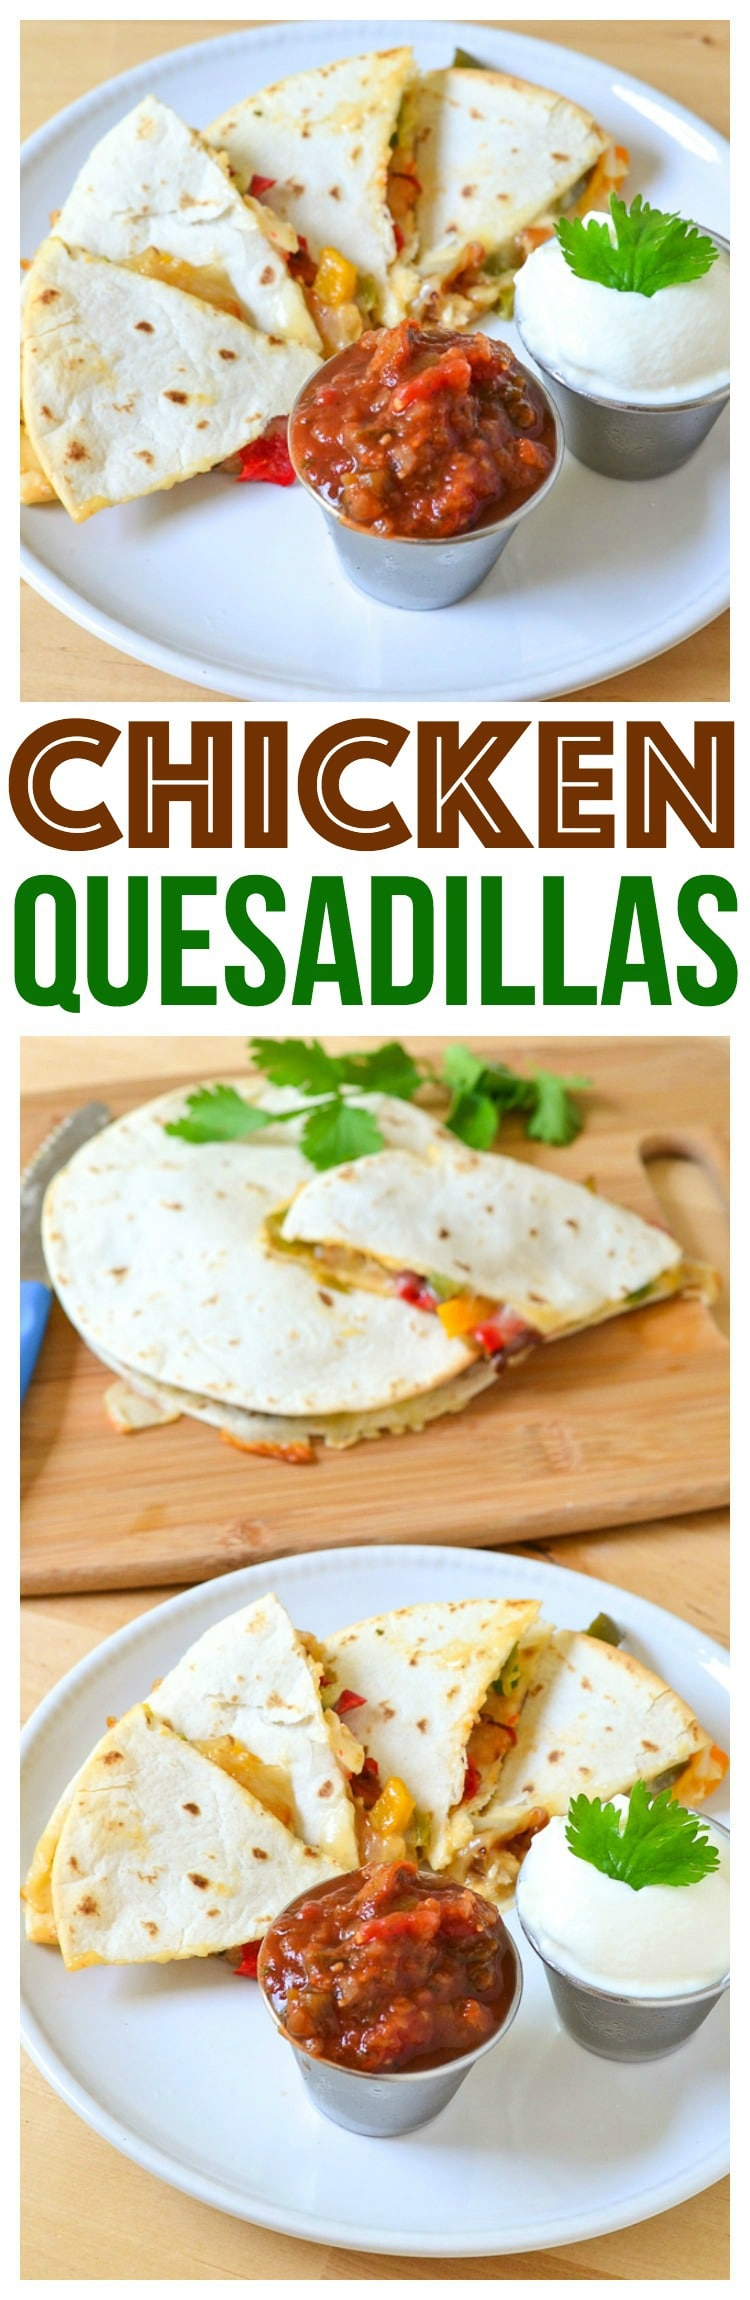 Healthy baked chicken quesadillas recipe easy to make and you can easily make vegetarian. Plus homemade chicken quesadillas seasoning.